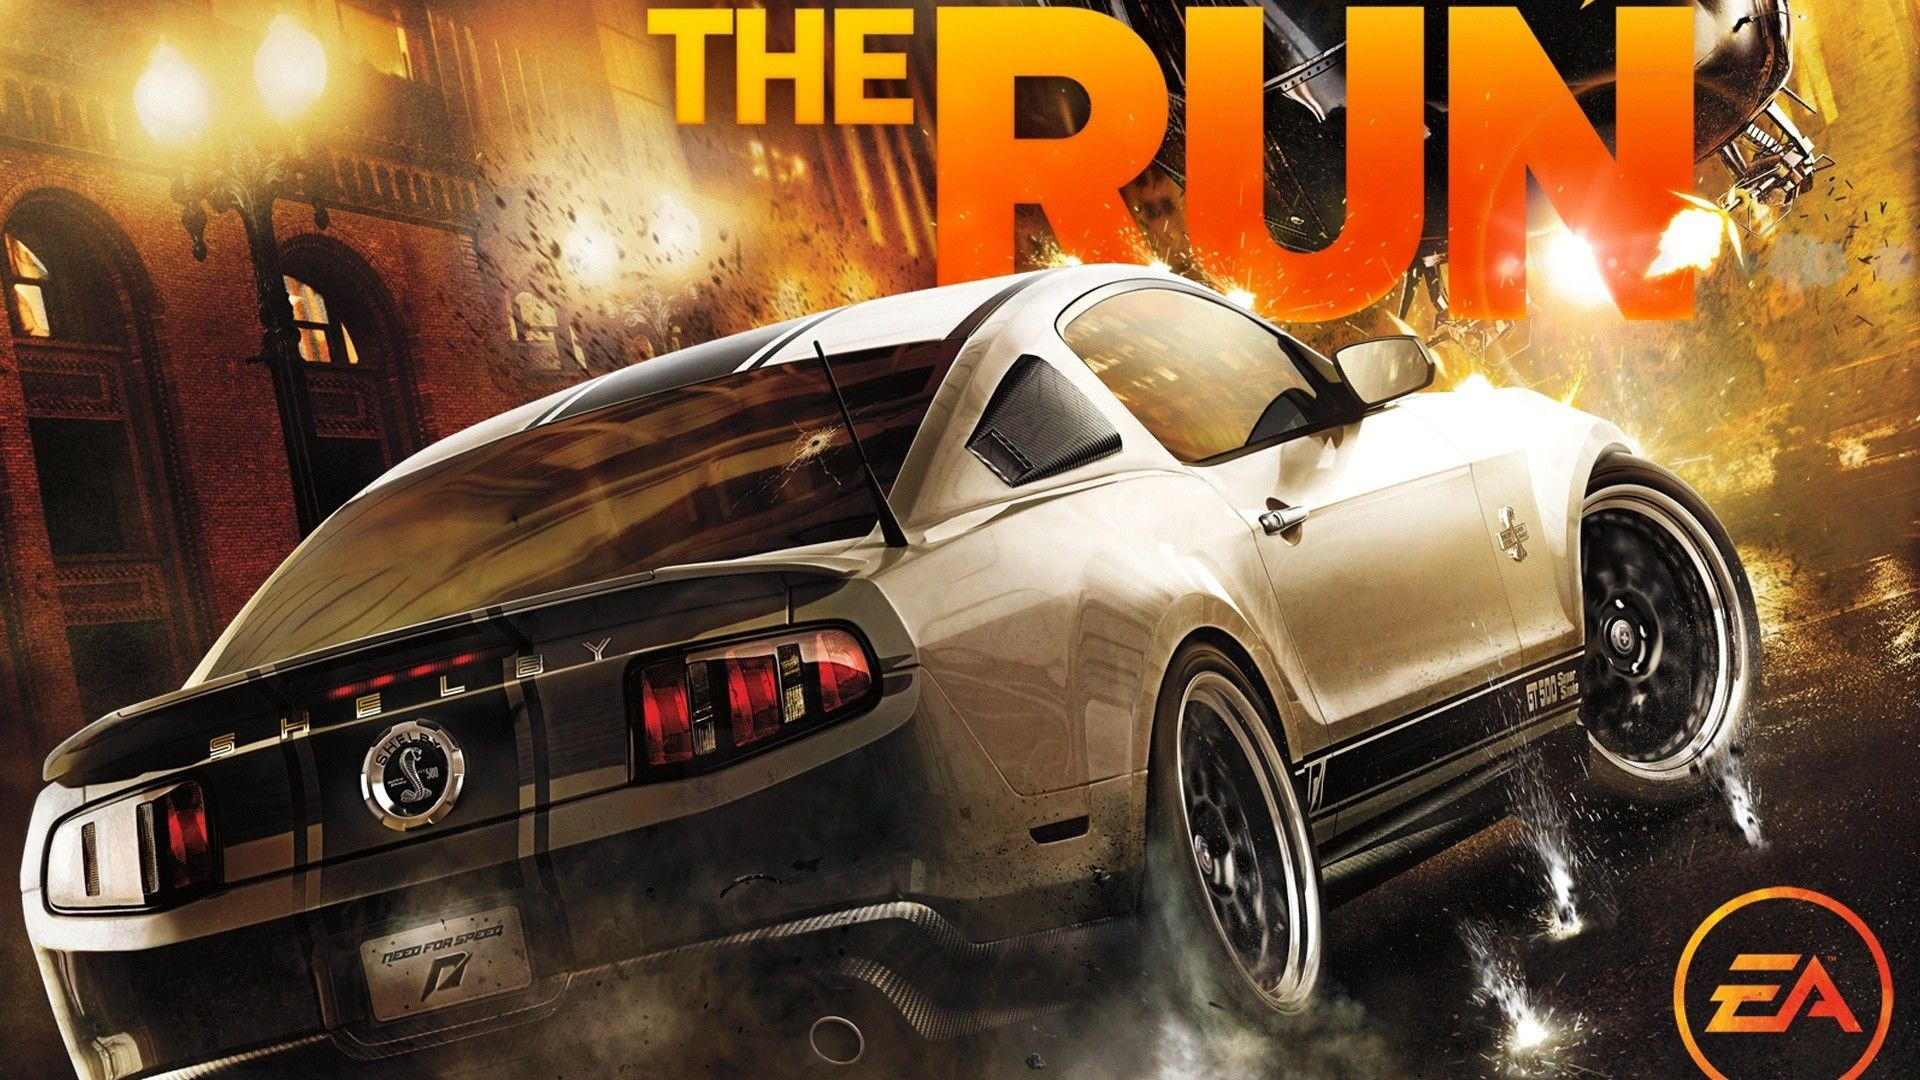 Car Need For Speed The Run Video Games Shelby GT500 Super Snake 1920x1080